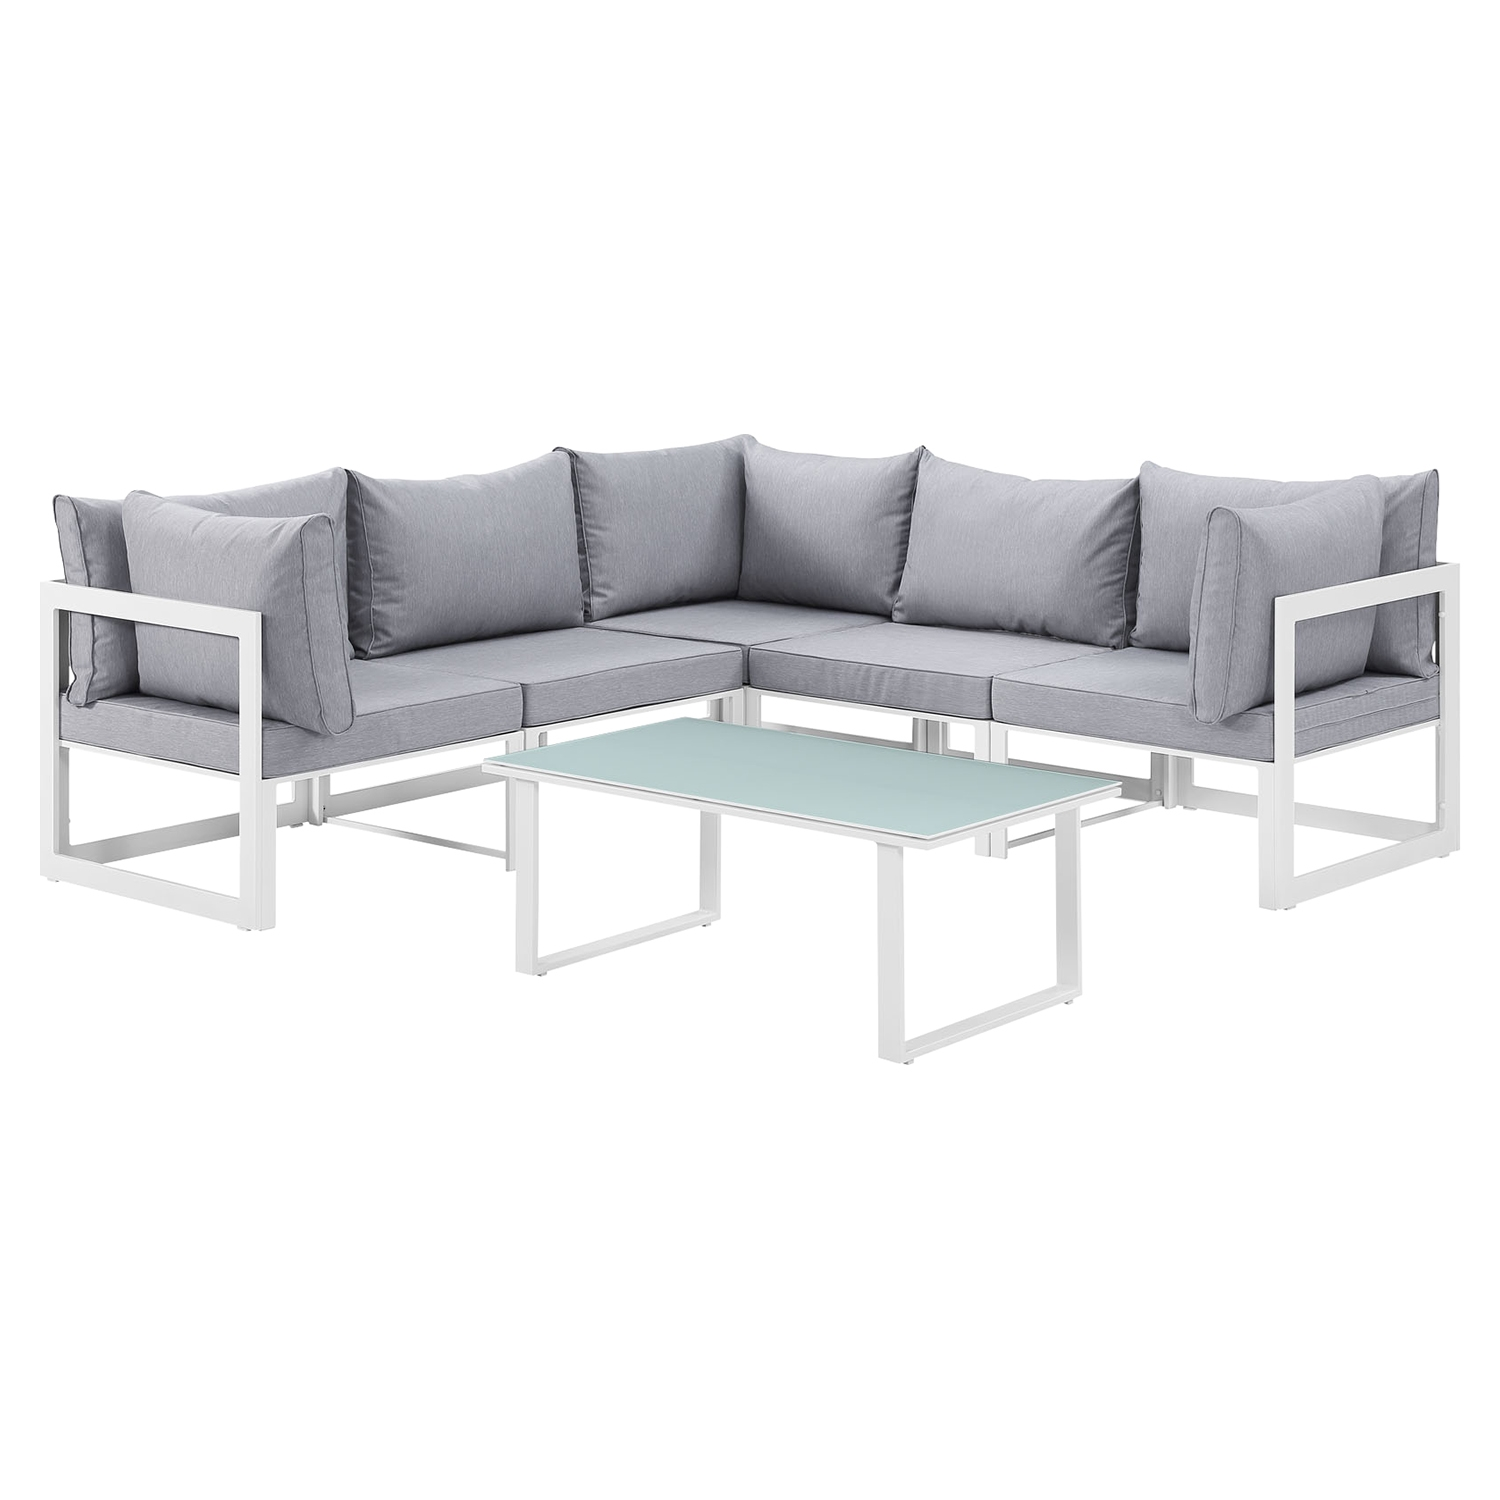 Fortuna 6 Pieces Outdoor Patio Sectional Set - White Frame, Gray Cushion - EEI-1732-WHI-GRY-SET